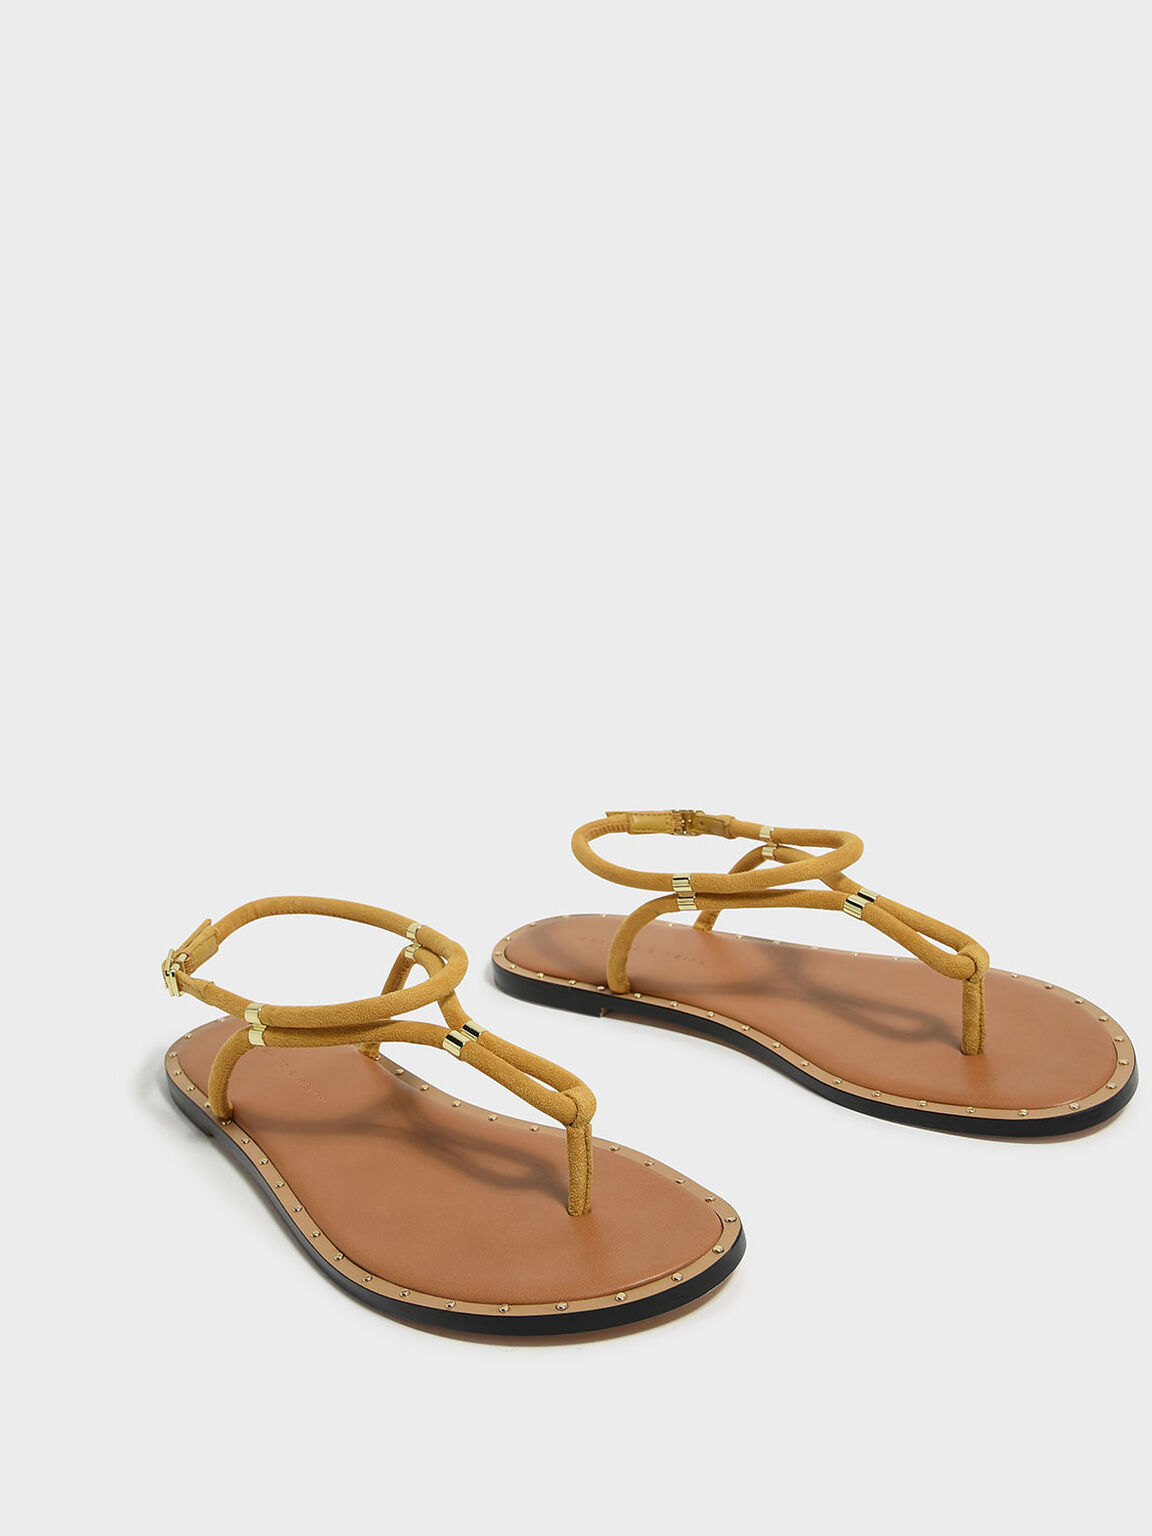 Gold Accents Thong Sandals, Yellow, hi-res